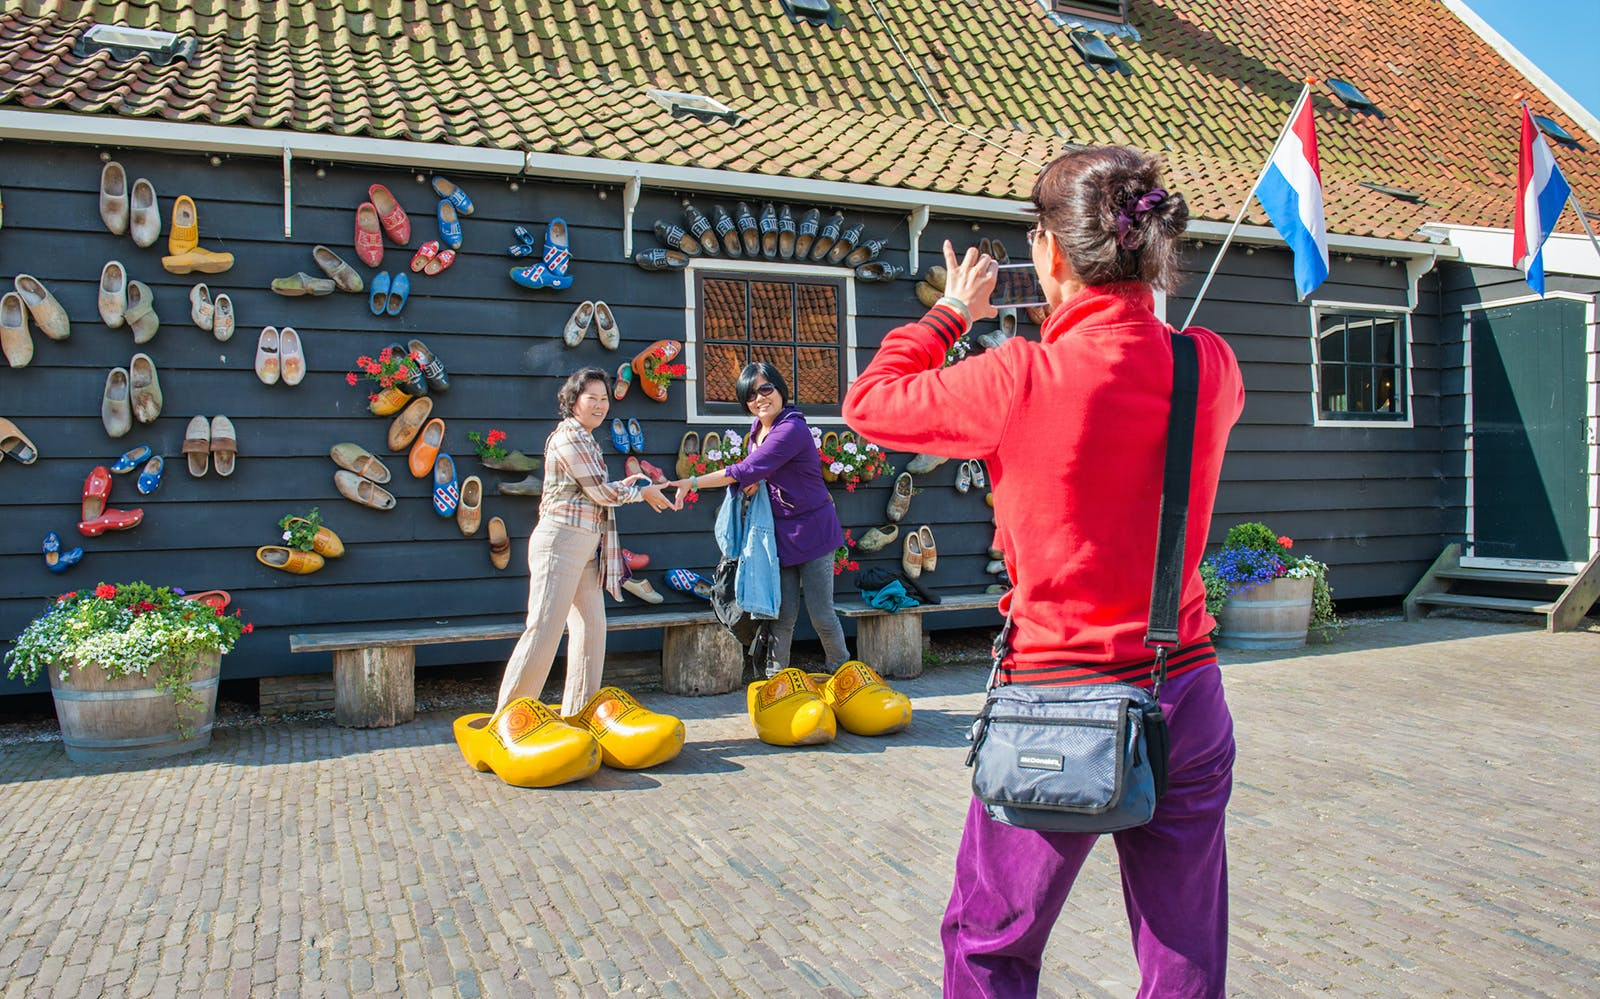 Day Tour: Volendam, Edam, and Windmills from Amsterdam